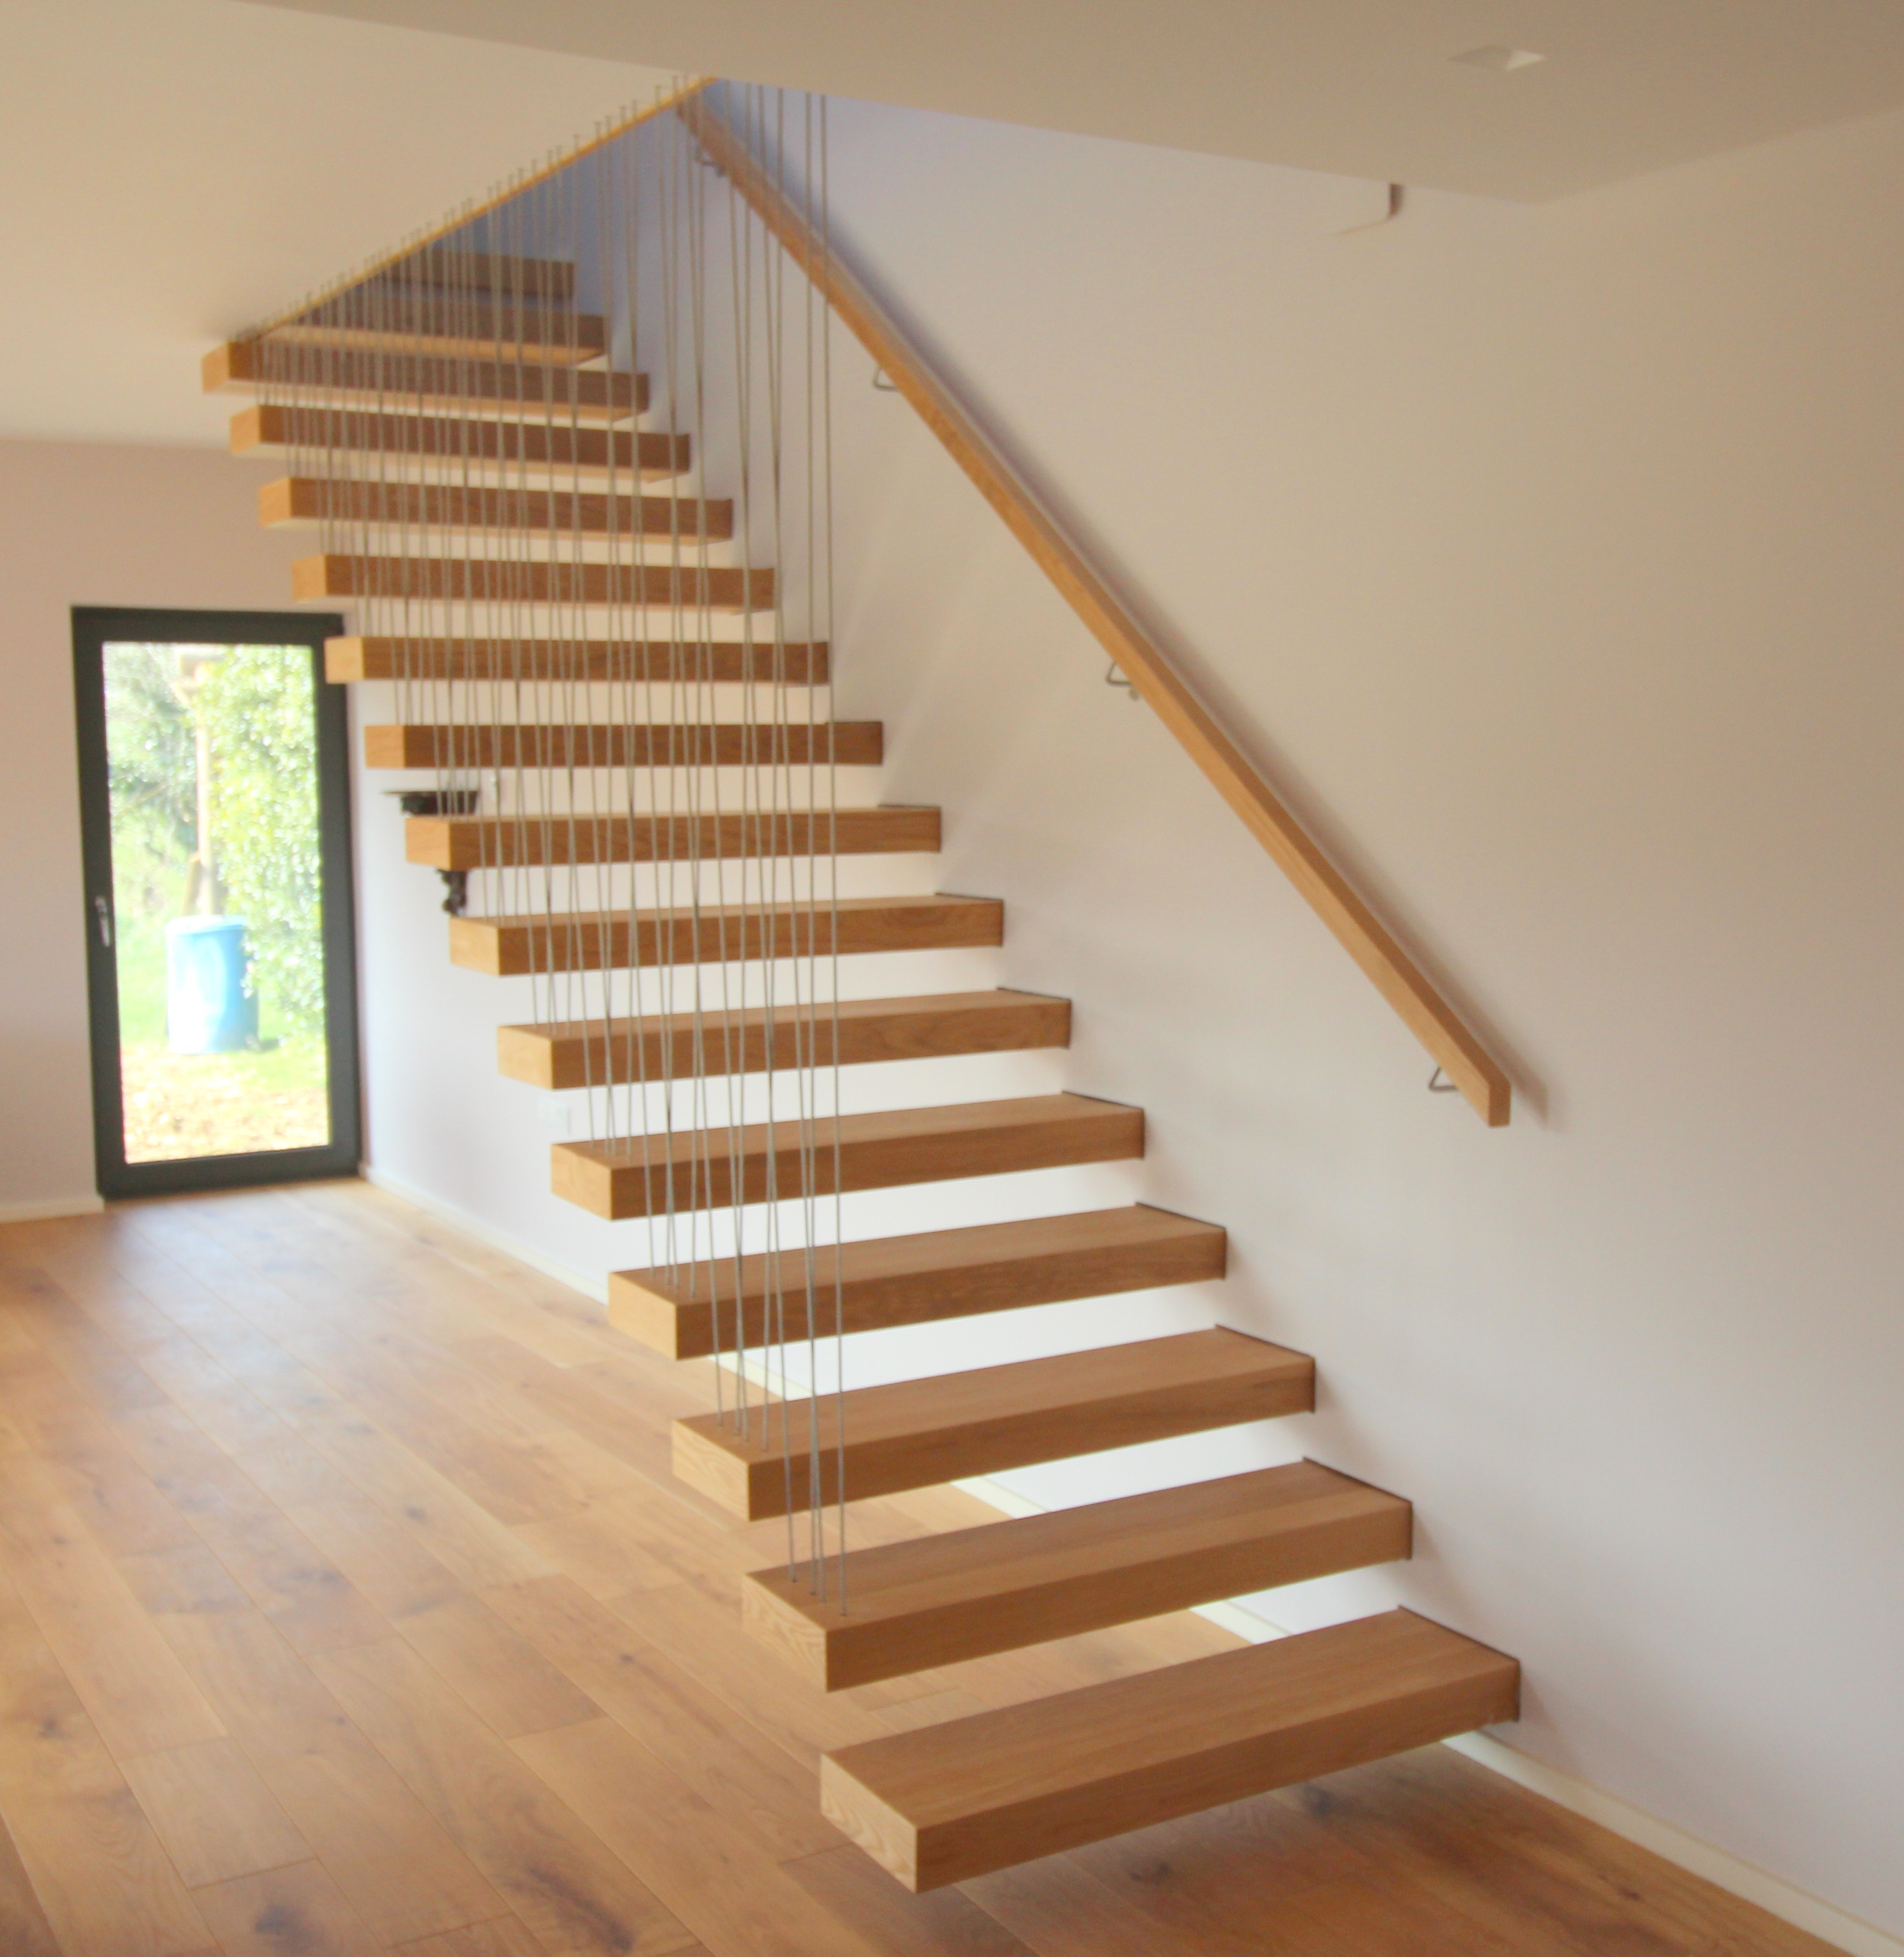 Stairs & Staircase By Jea Design